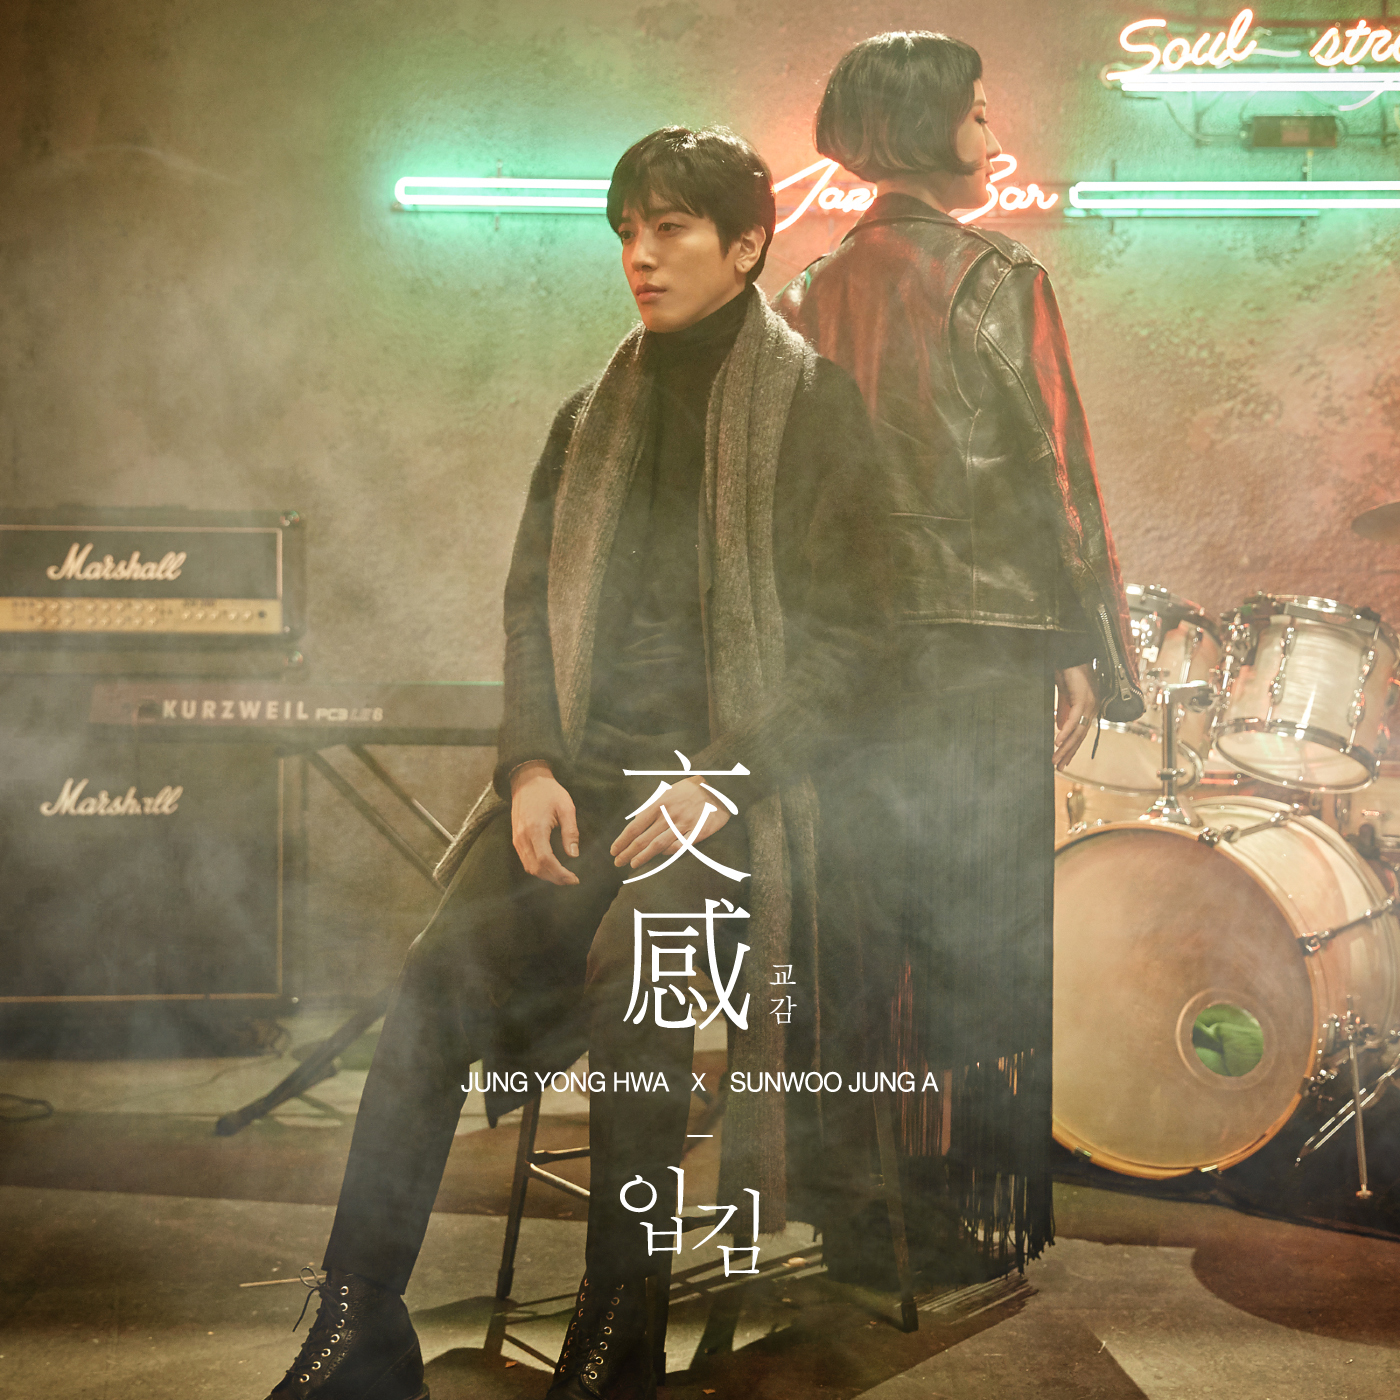 Jung Yong Hwa (CNBLUE), SunWoo Jung A - Empathy - Hello - Fireworks K2Ost free mp3 download korean song kpop kdrama ost lyric 320 kbps